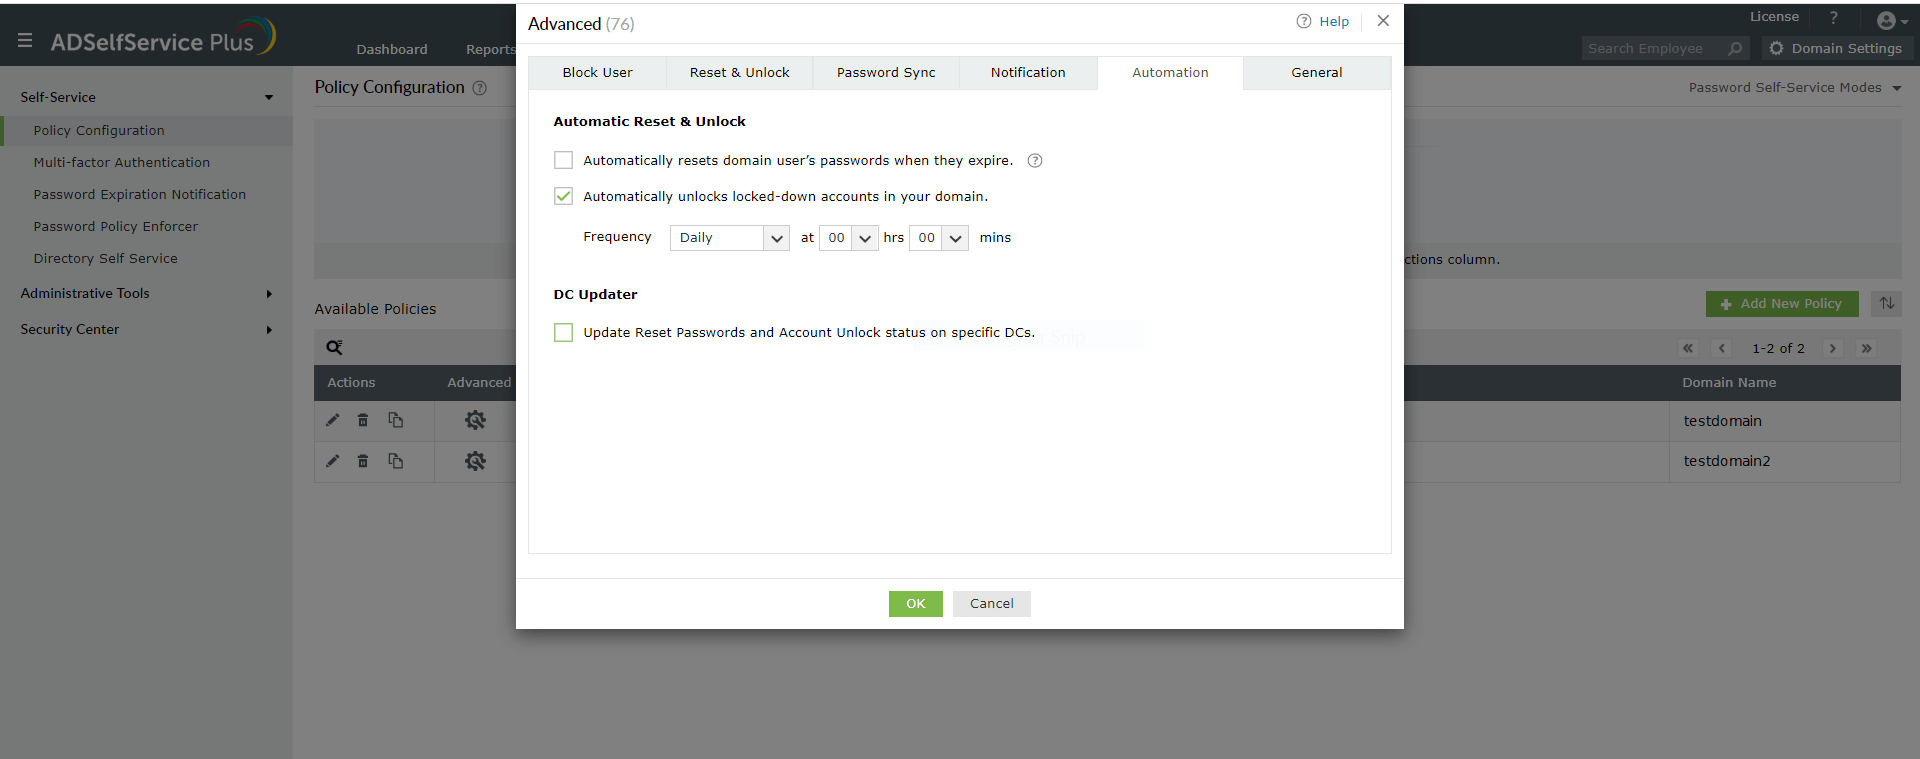 Automate account unlocks